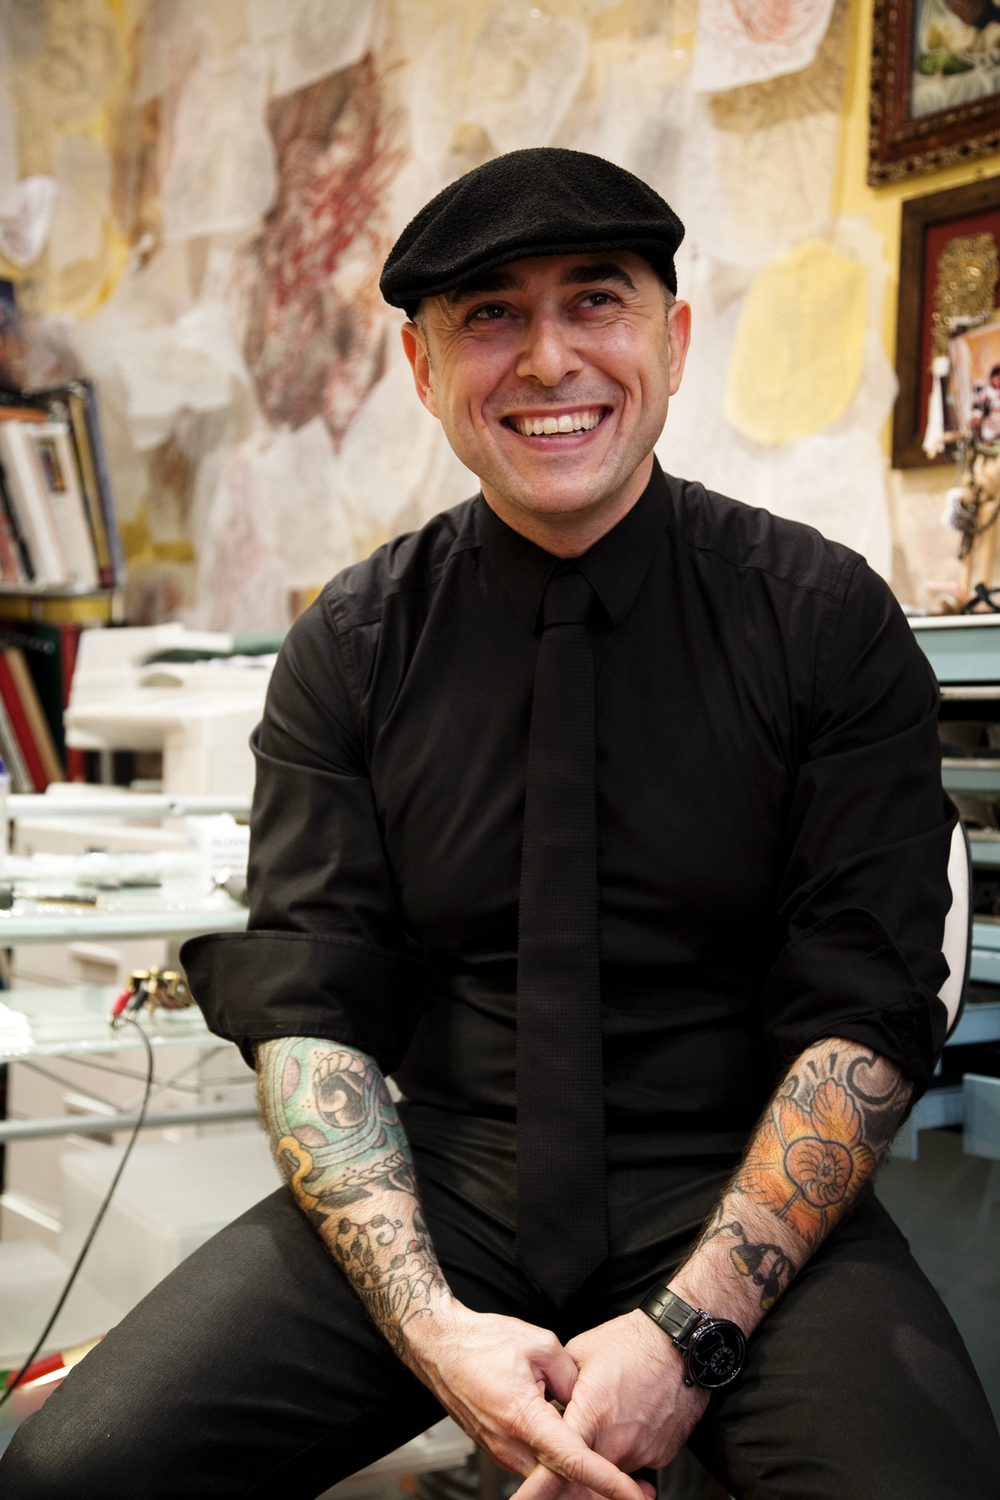 London's Best Tattoo Studios - TimeOut